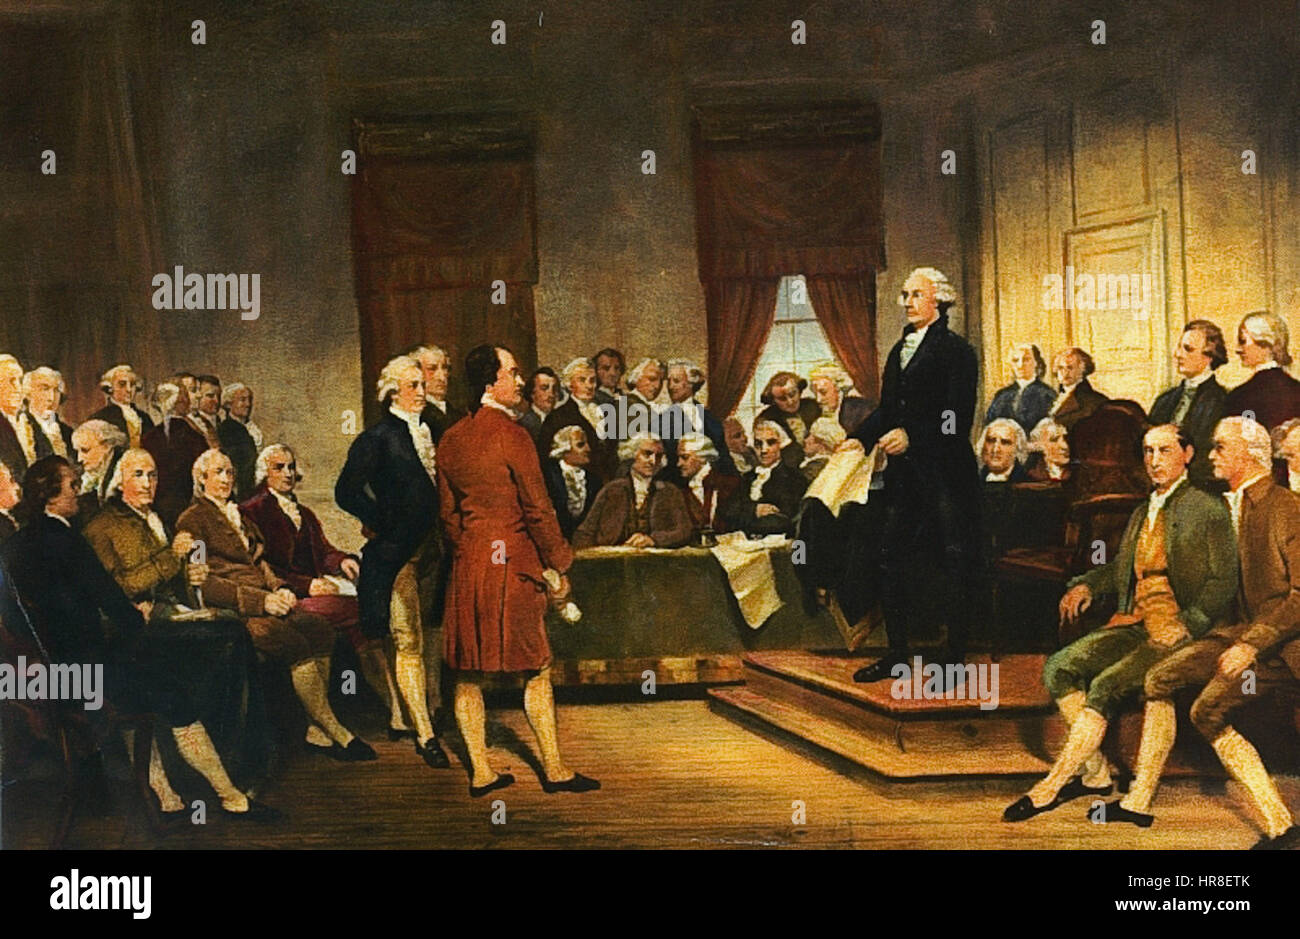 Washington Constitutional Convention 1787 - Stock Image